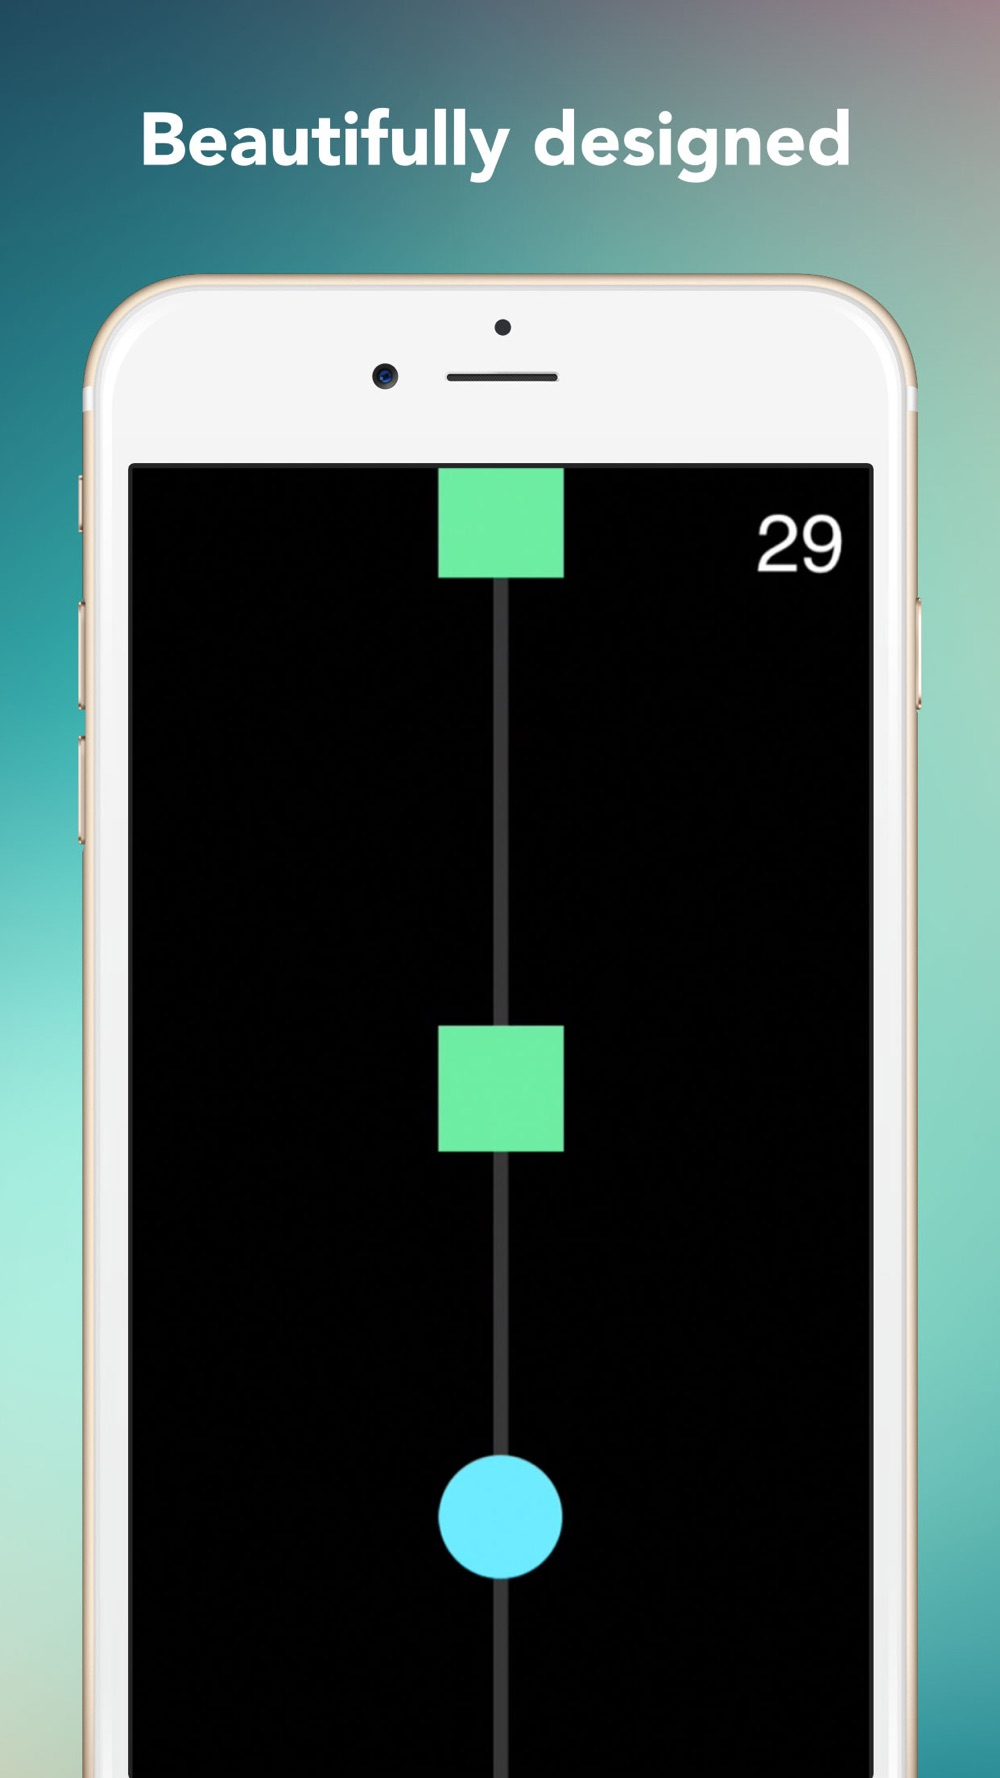 Hack tool for Impossible: Ultimate Focus Challenge Game